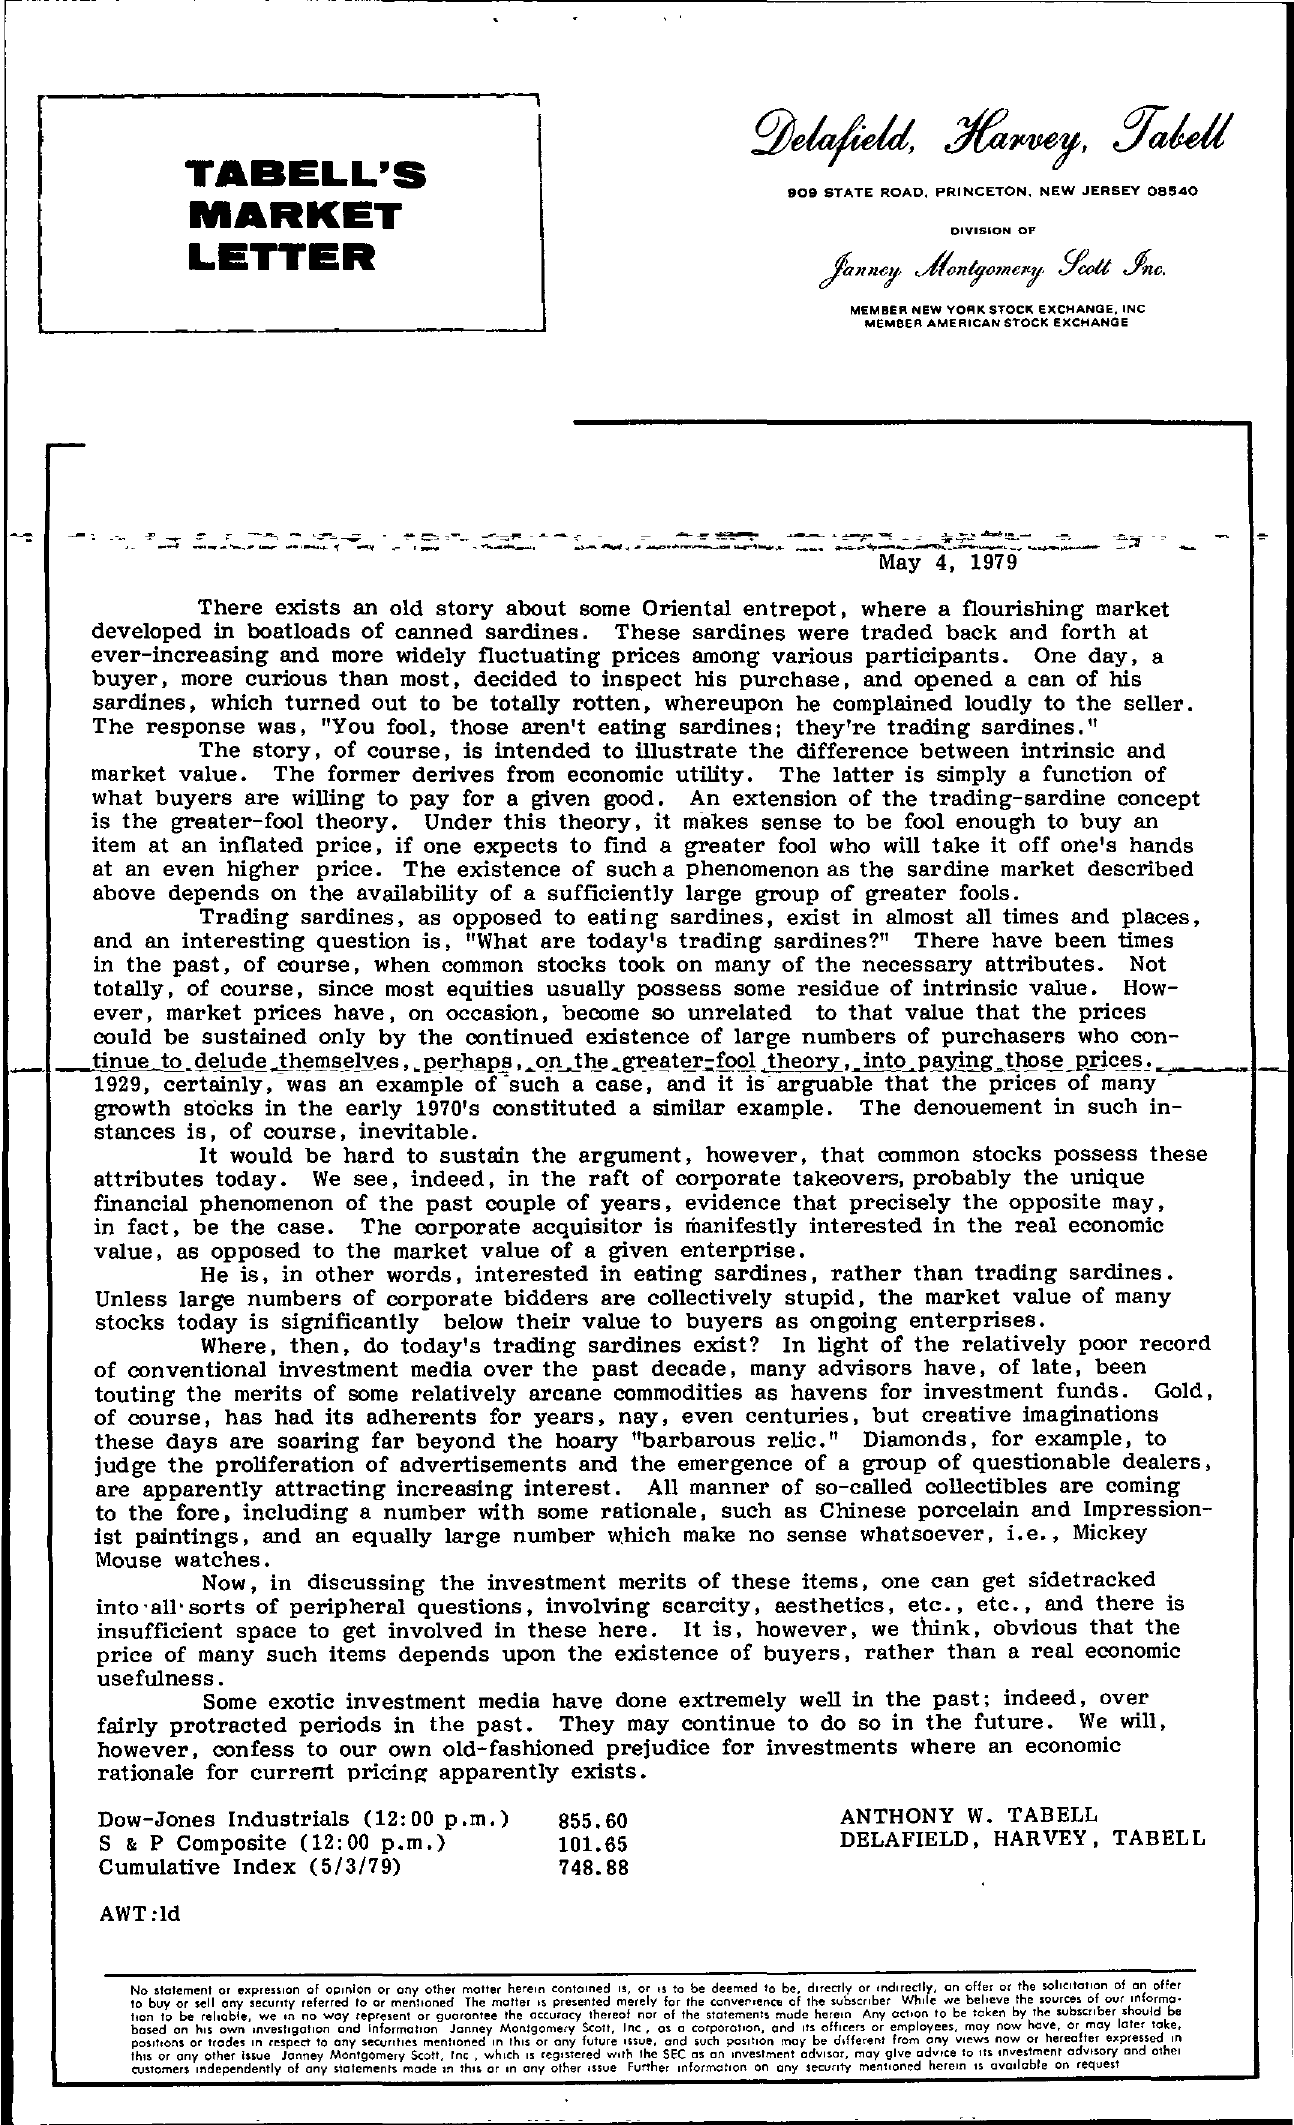 Tabell's Market Letter - May 04, 1979